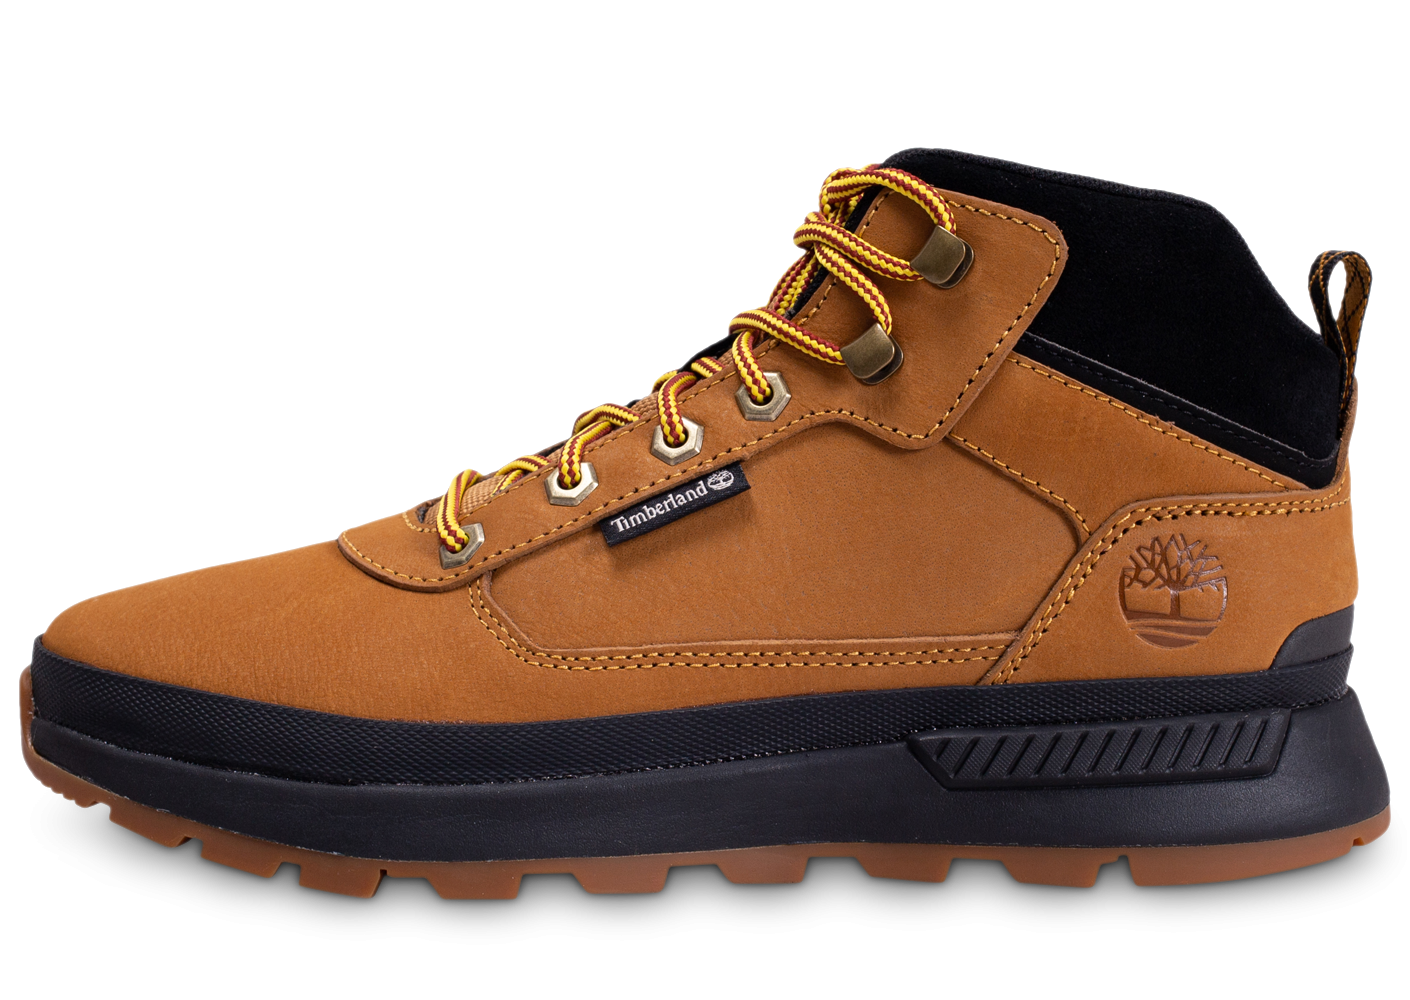 modele chaussures timberland